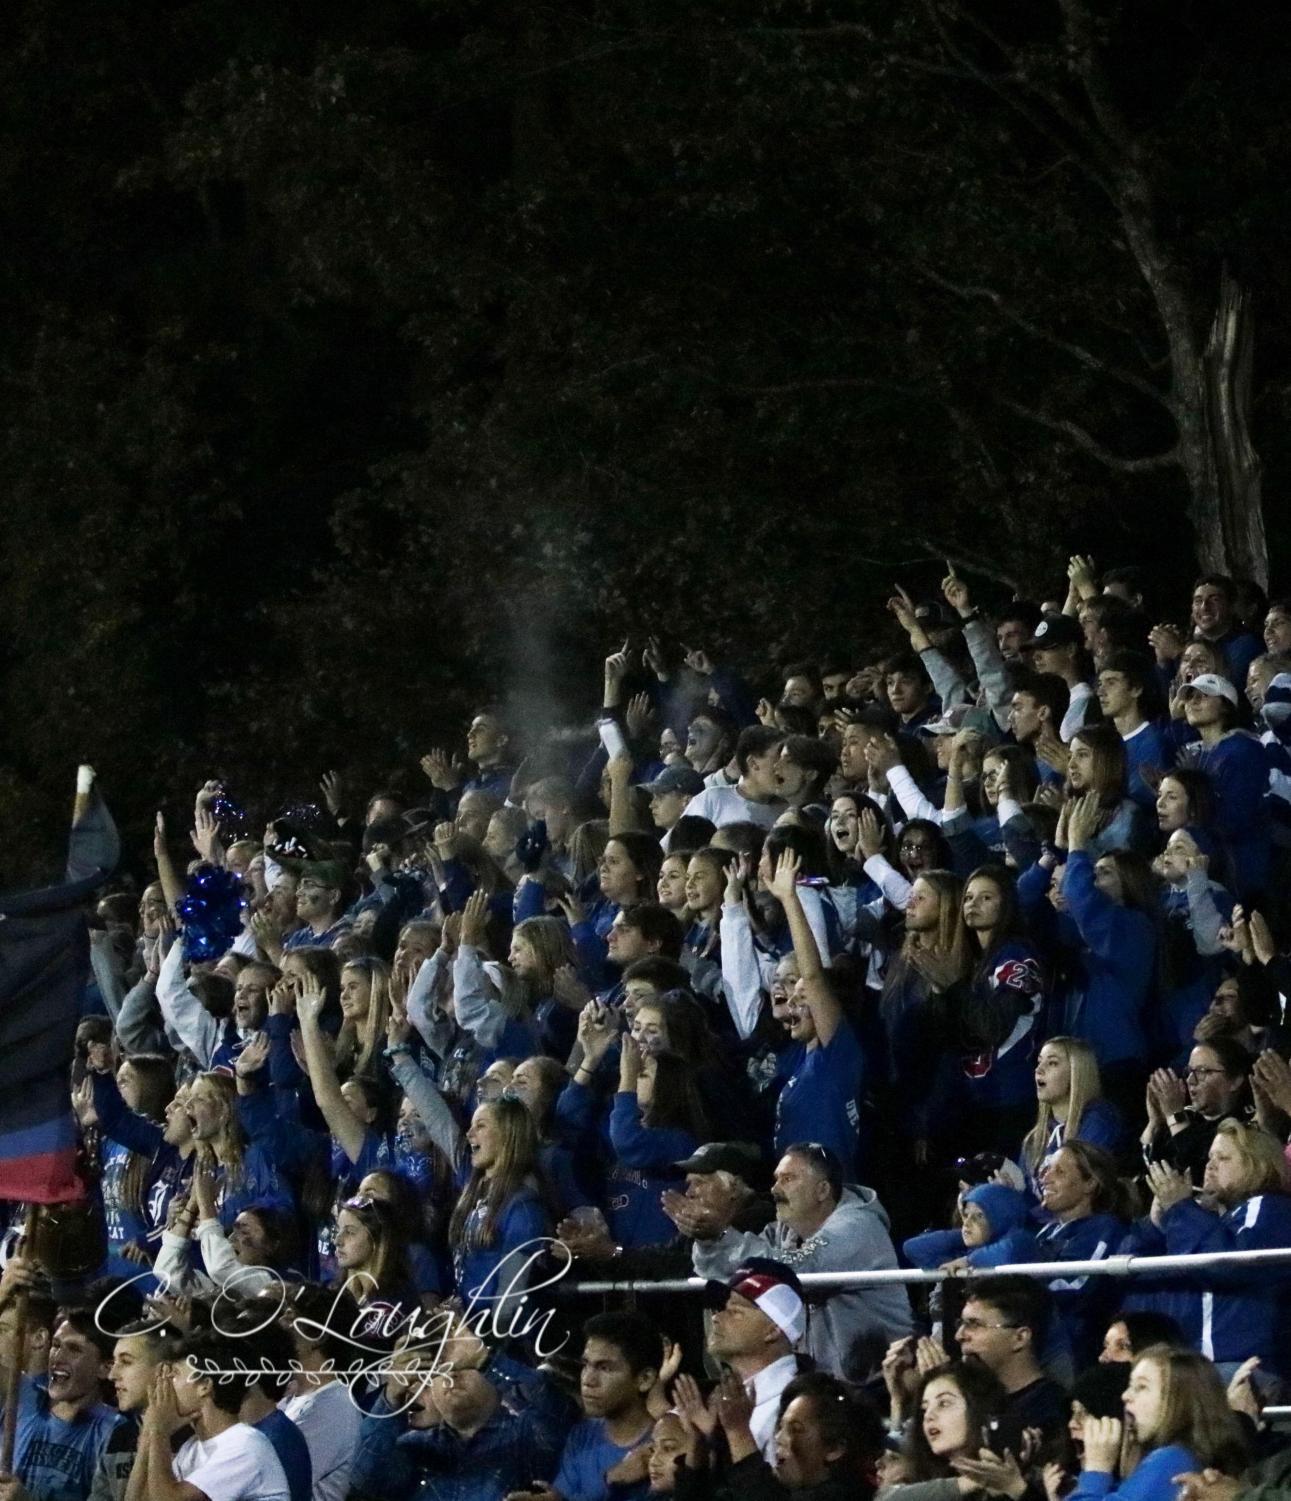 Londonderry fan section cheers on the football team. The Lancers won 42-20.